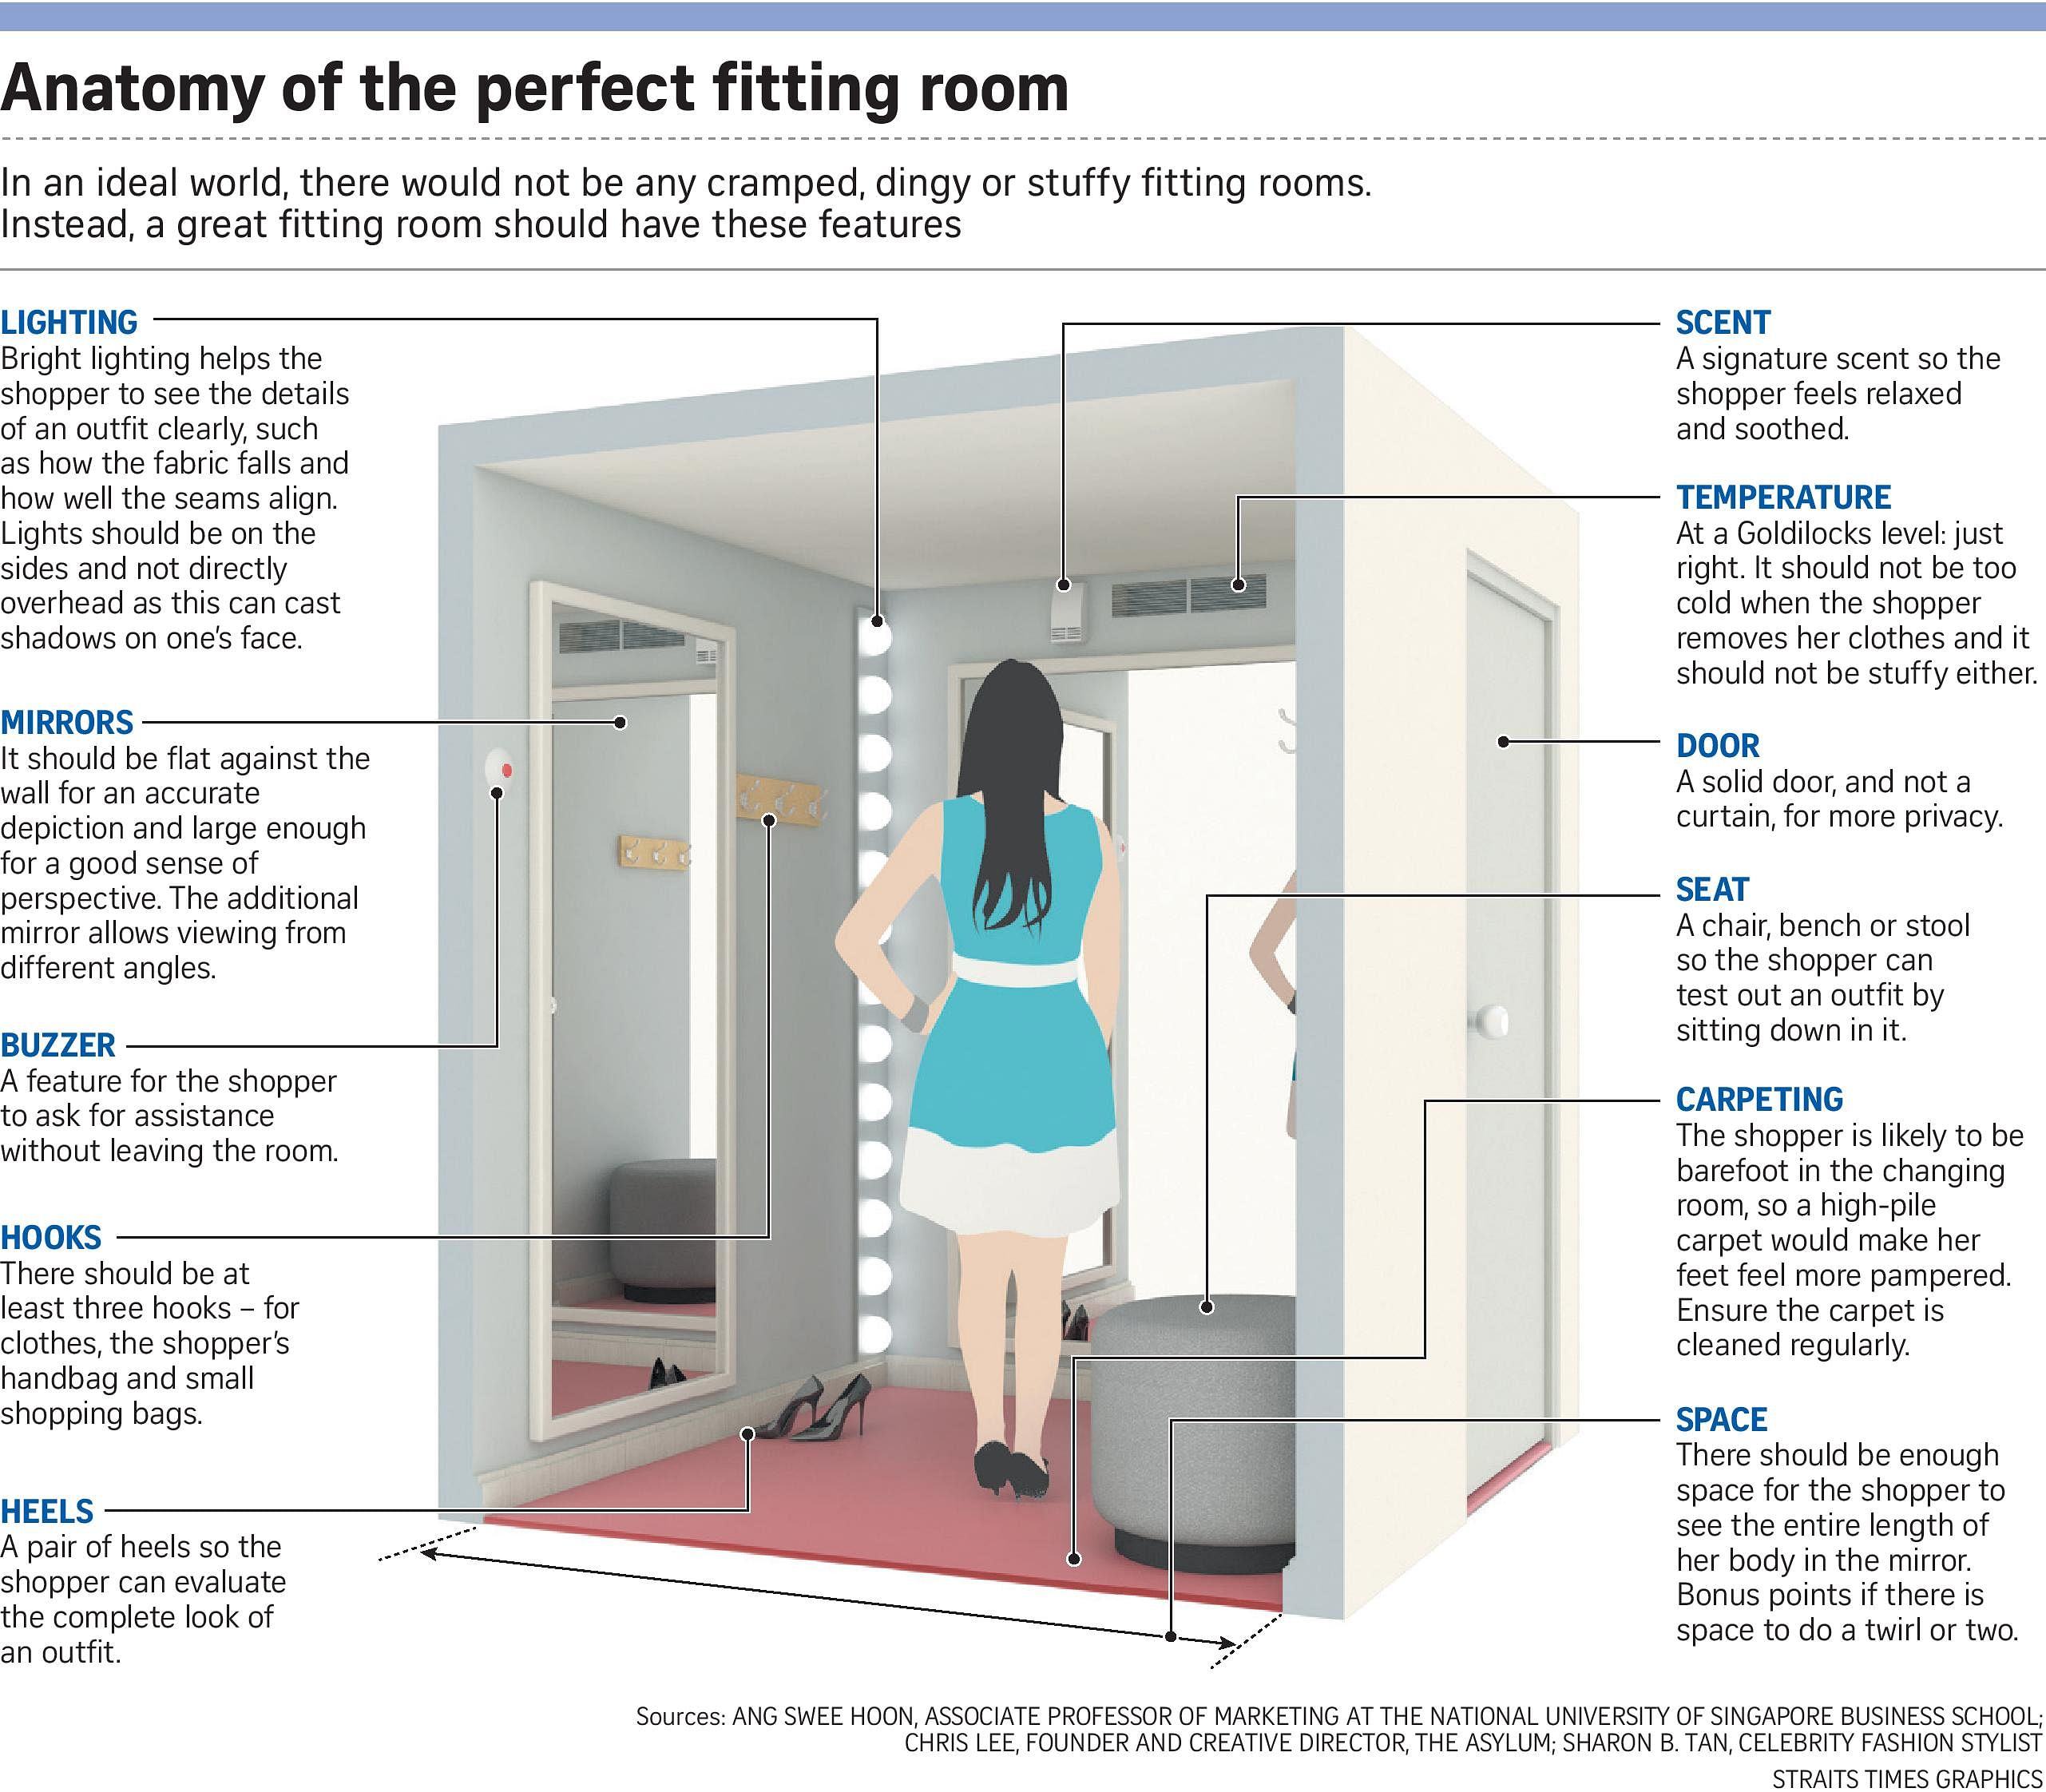 Fitting rooms in stores get makeover to enhance brands Fashion News